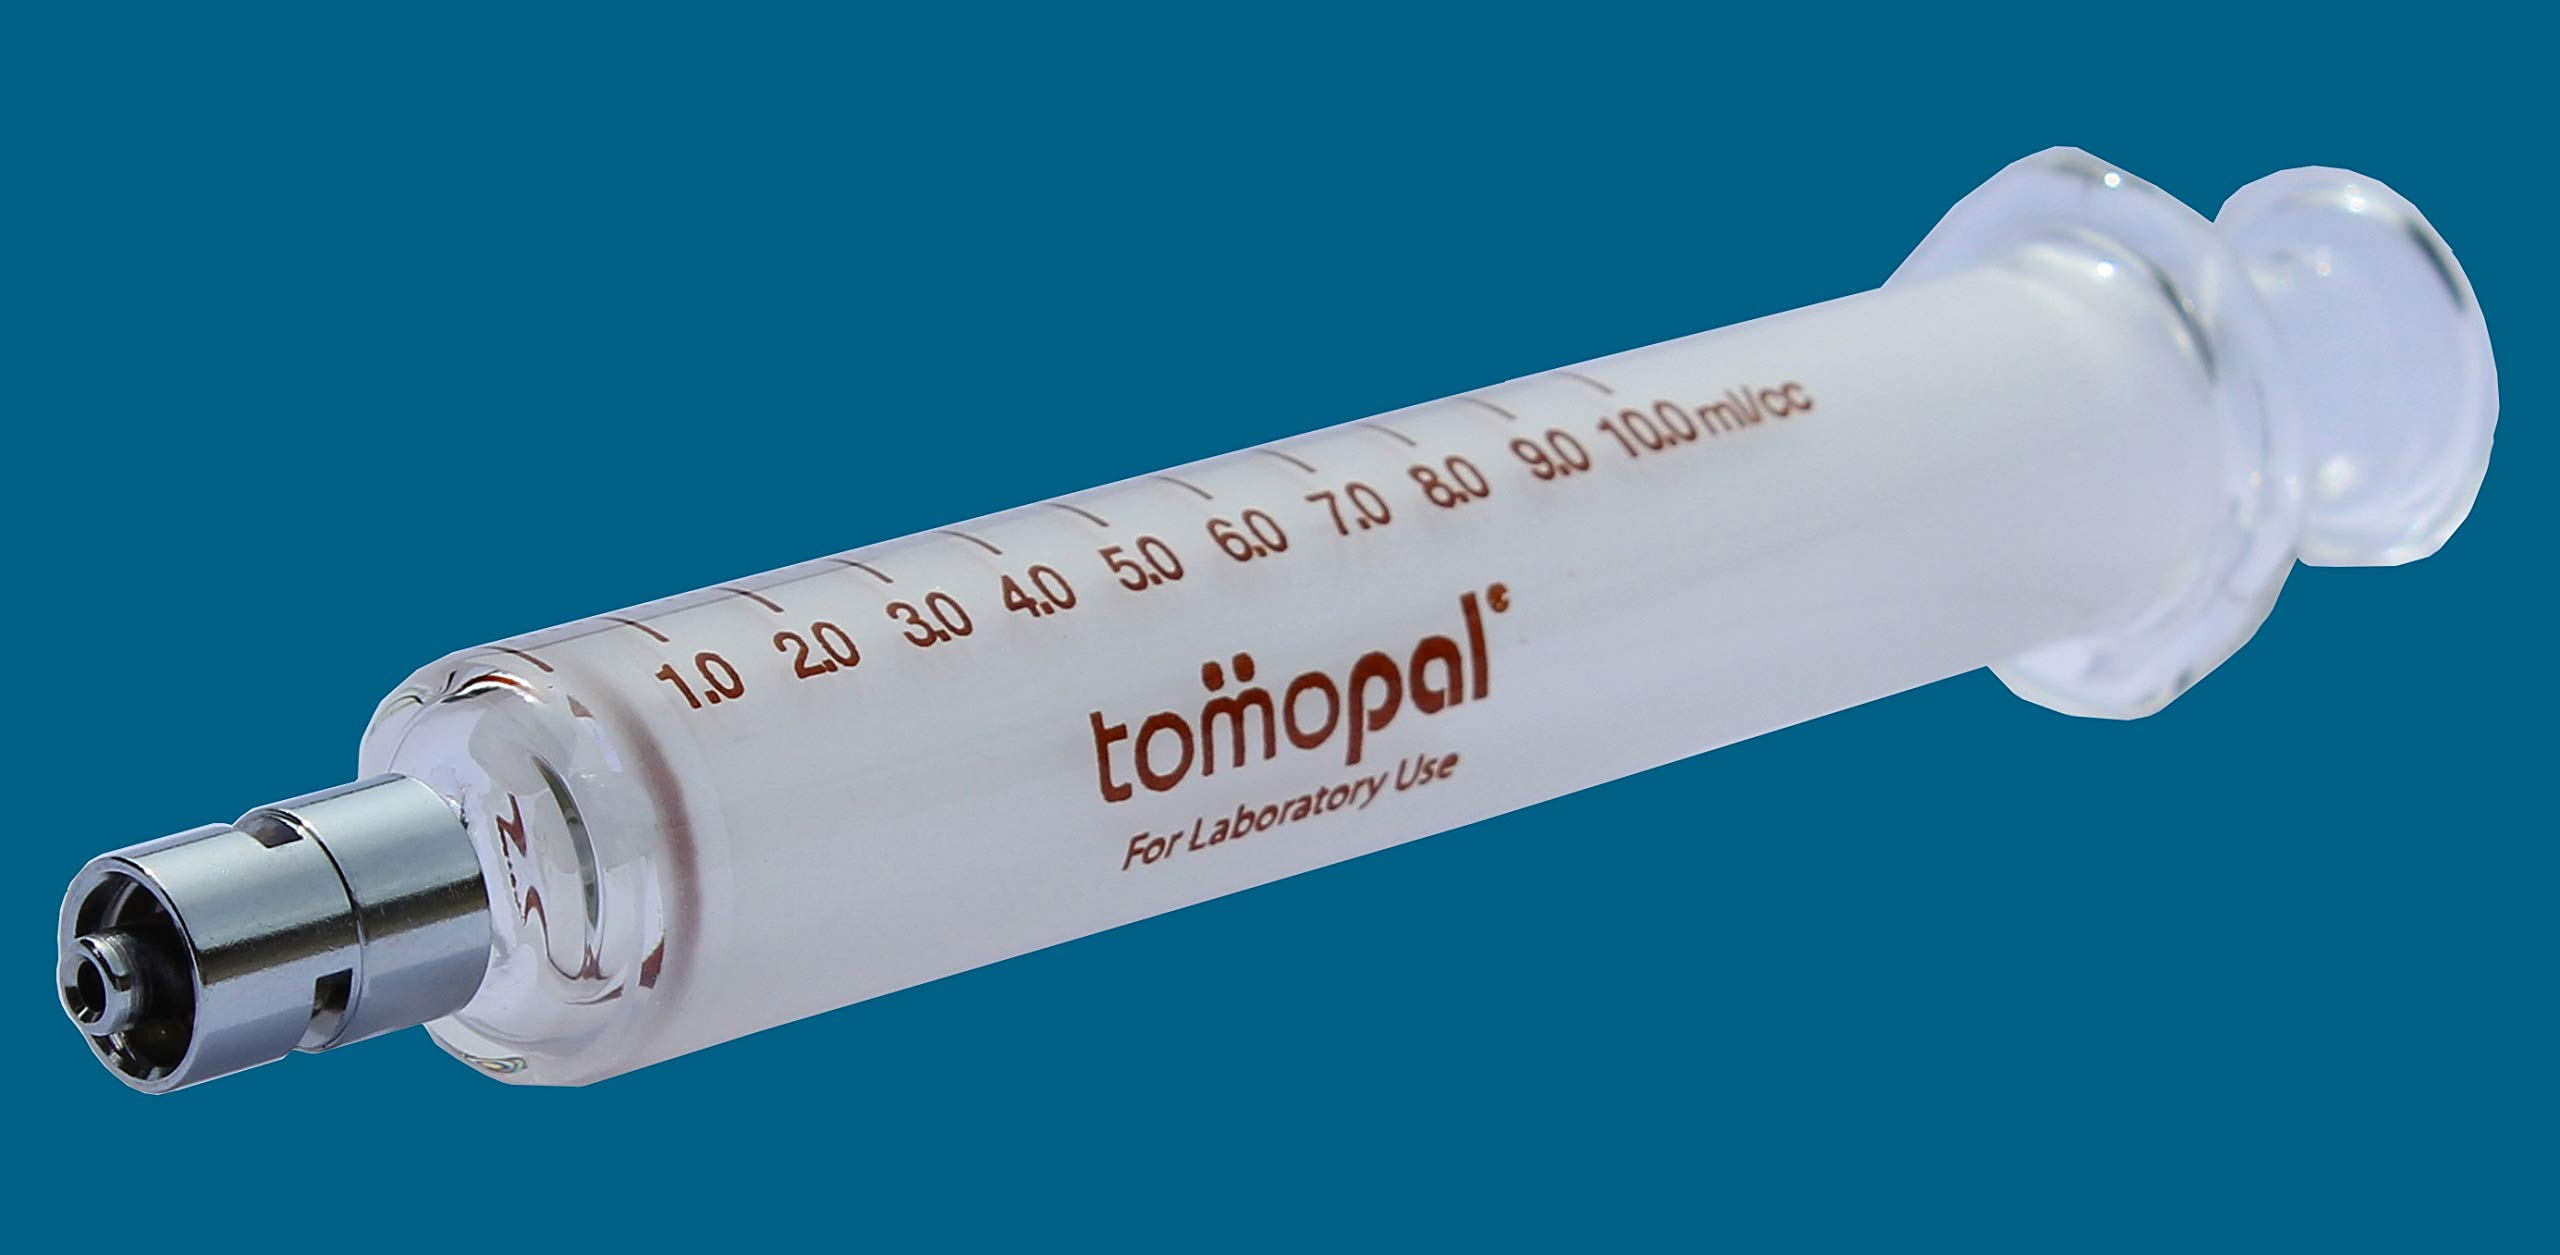 Glass Syringe 10 ml (Per Pack 6), The Glass Syringes are for Laboratory Use Only with 0.2 ml Graduation, Per Pack 6, P/N: 130-4010-X006 by Tomopal (Image #2)